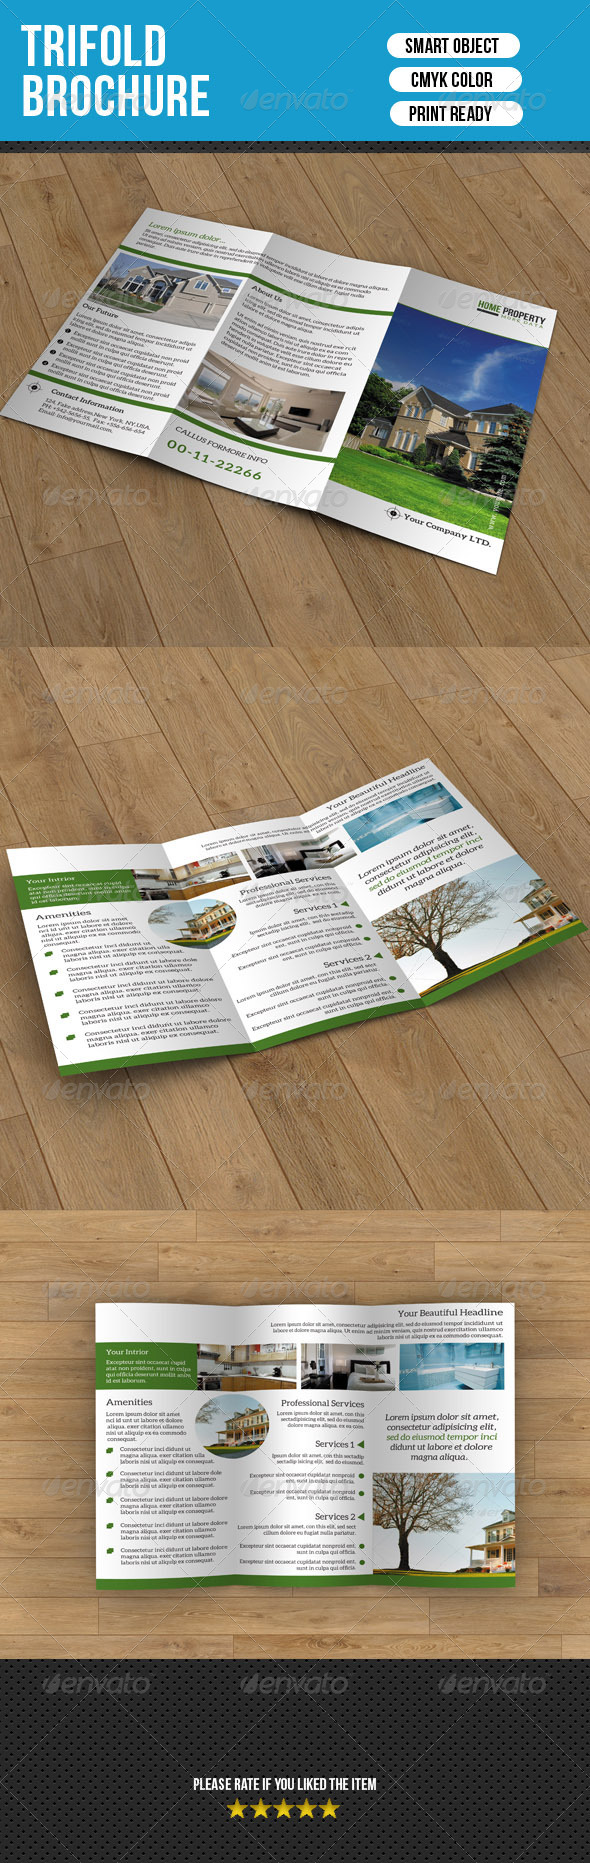 Trifold Brochure- Real Estate - Corporate Brochures